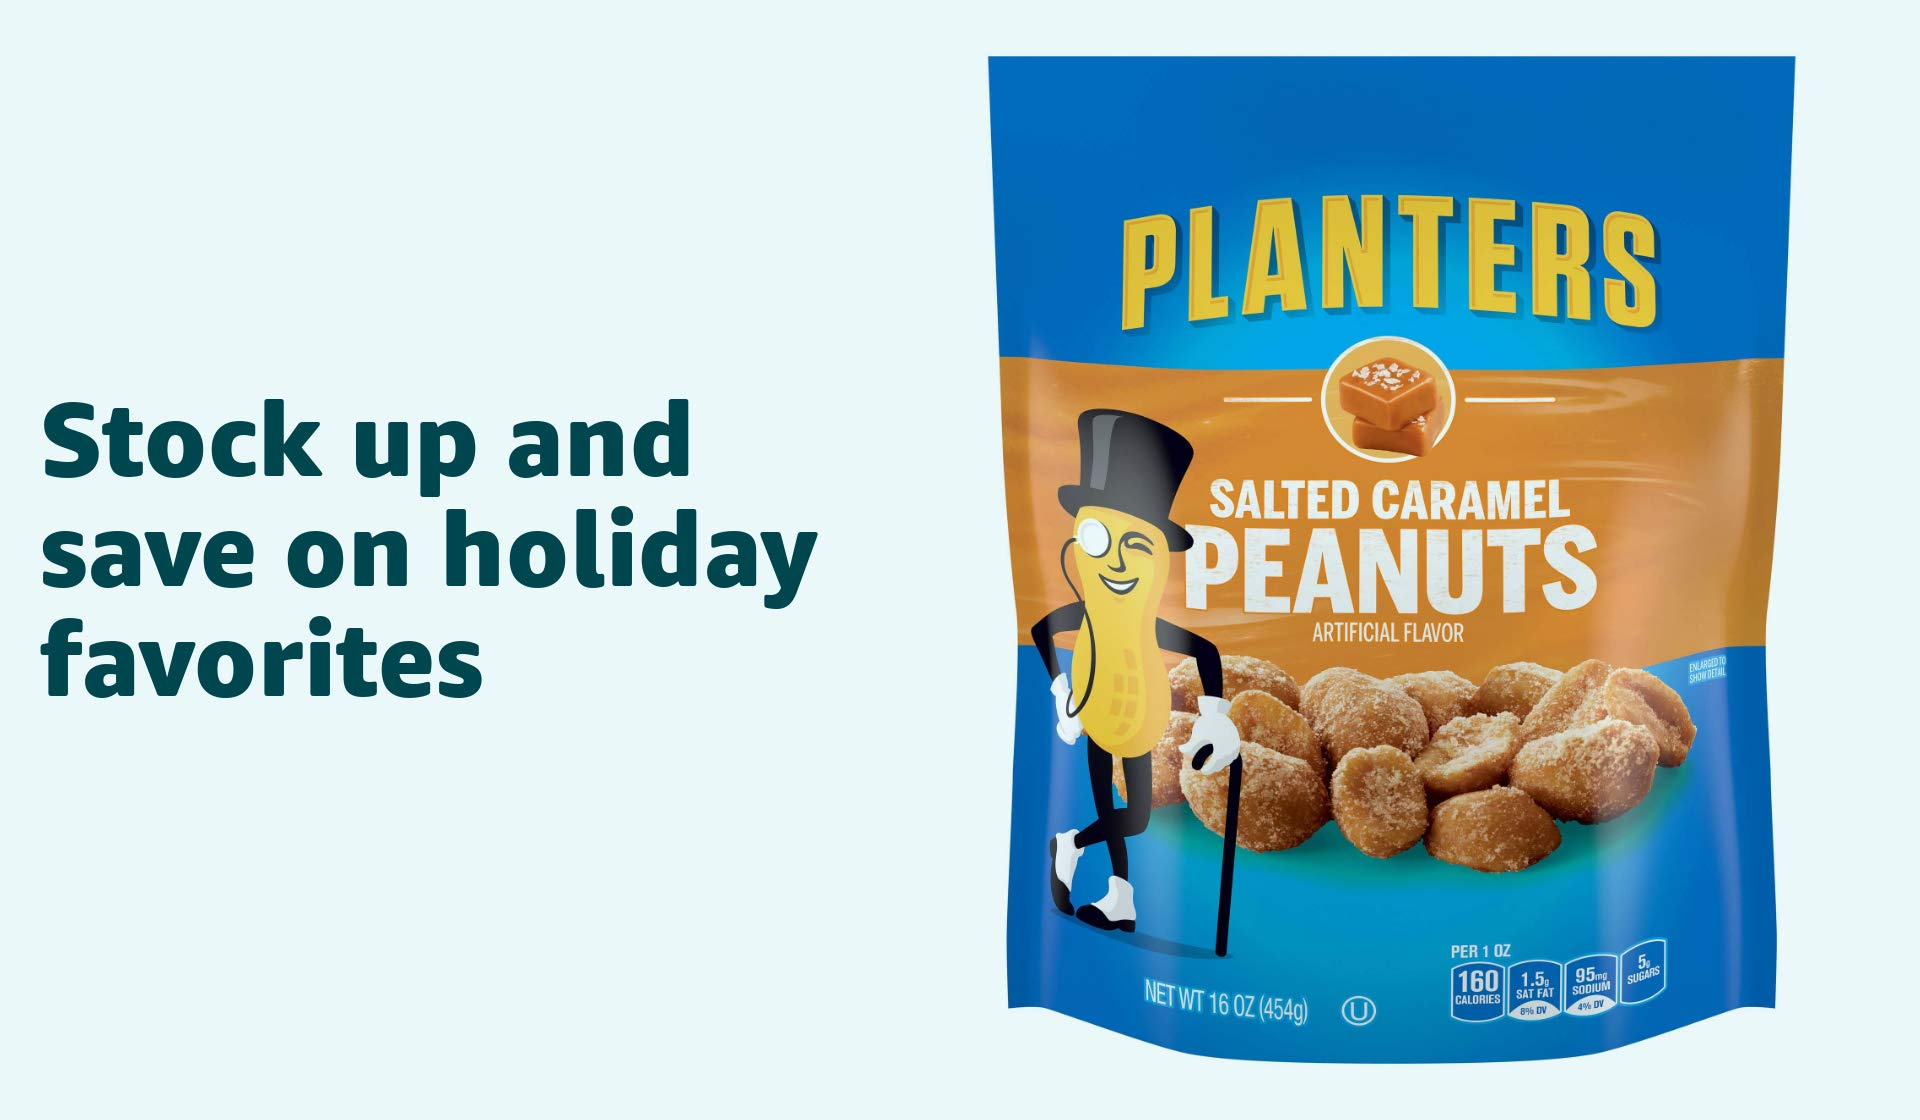 Stock up and save on holiday favorites